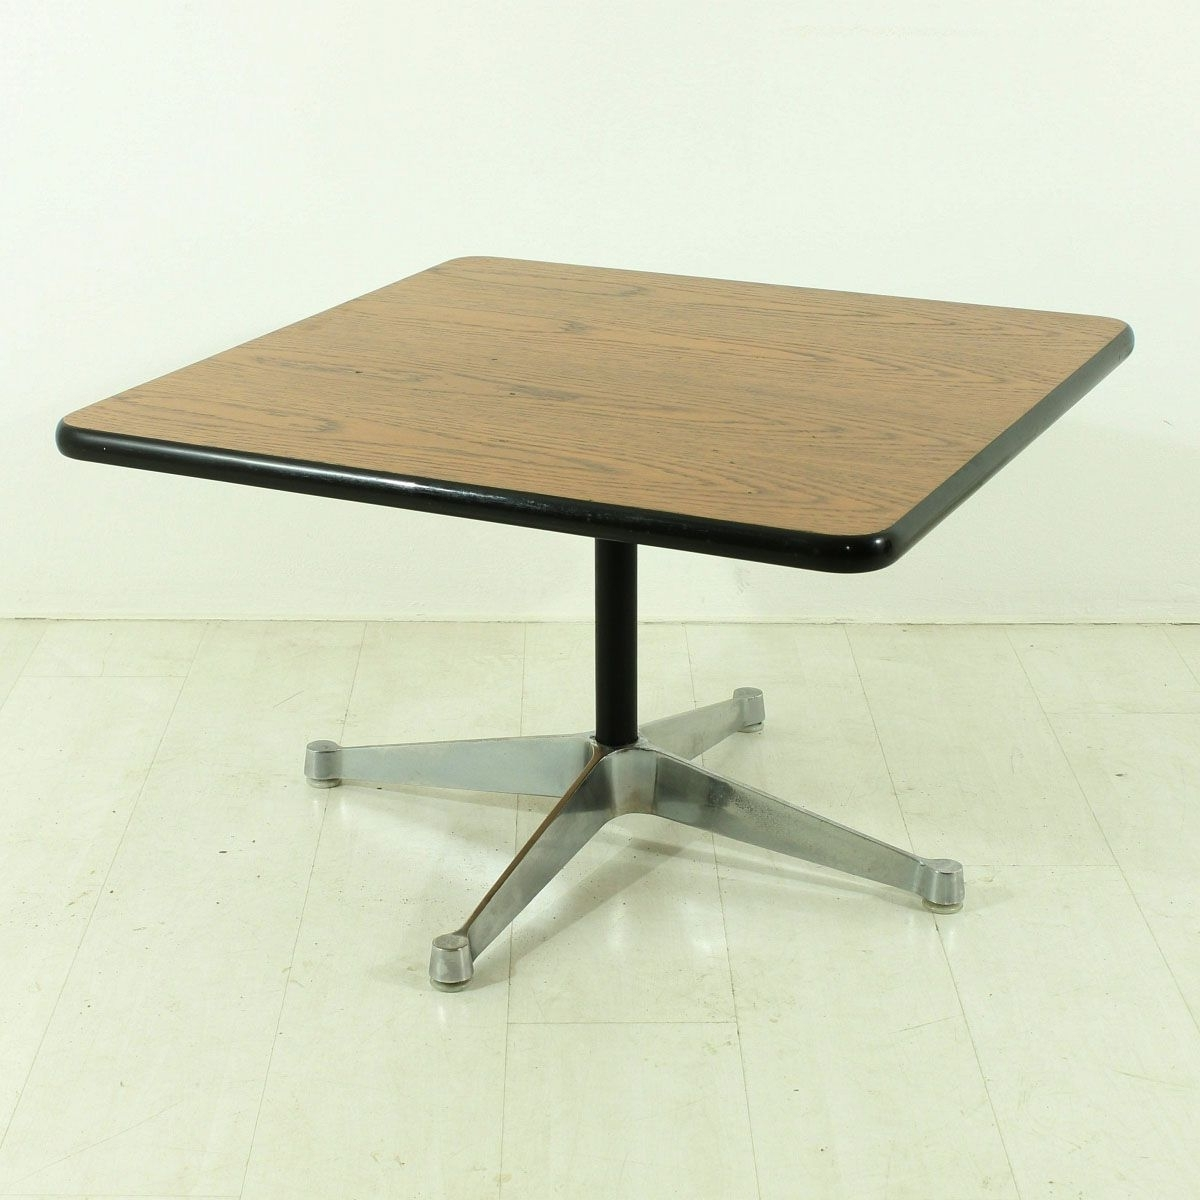 Vintage Four Star Base Coffee Tablecharles & Ray Eames For Vitra Intended For 2018 Expressionist Coffee Tables (Gallery 9 of 20)